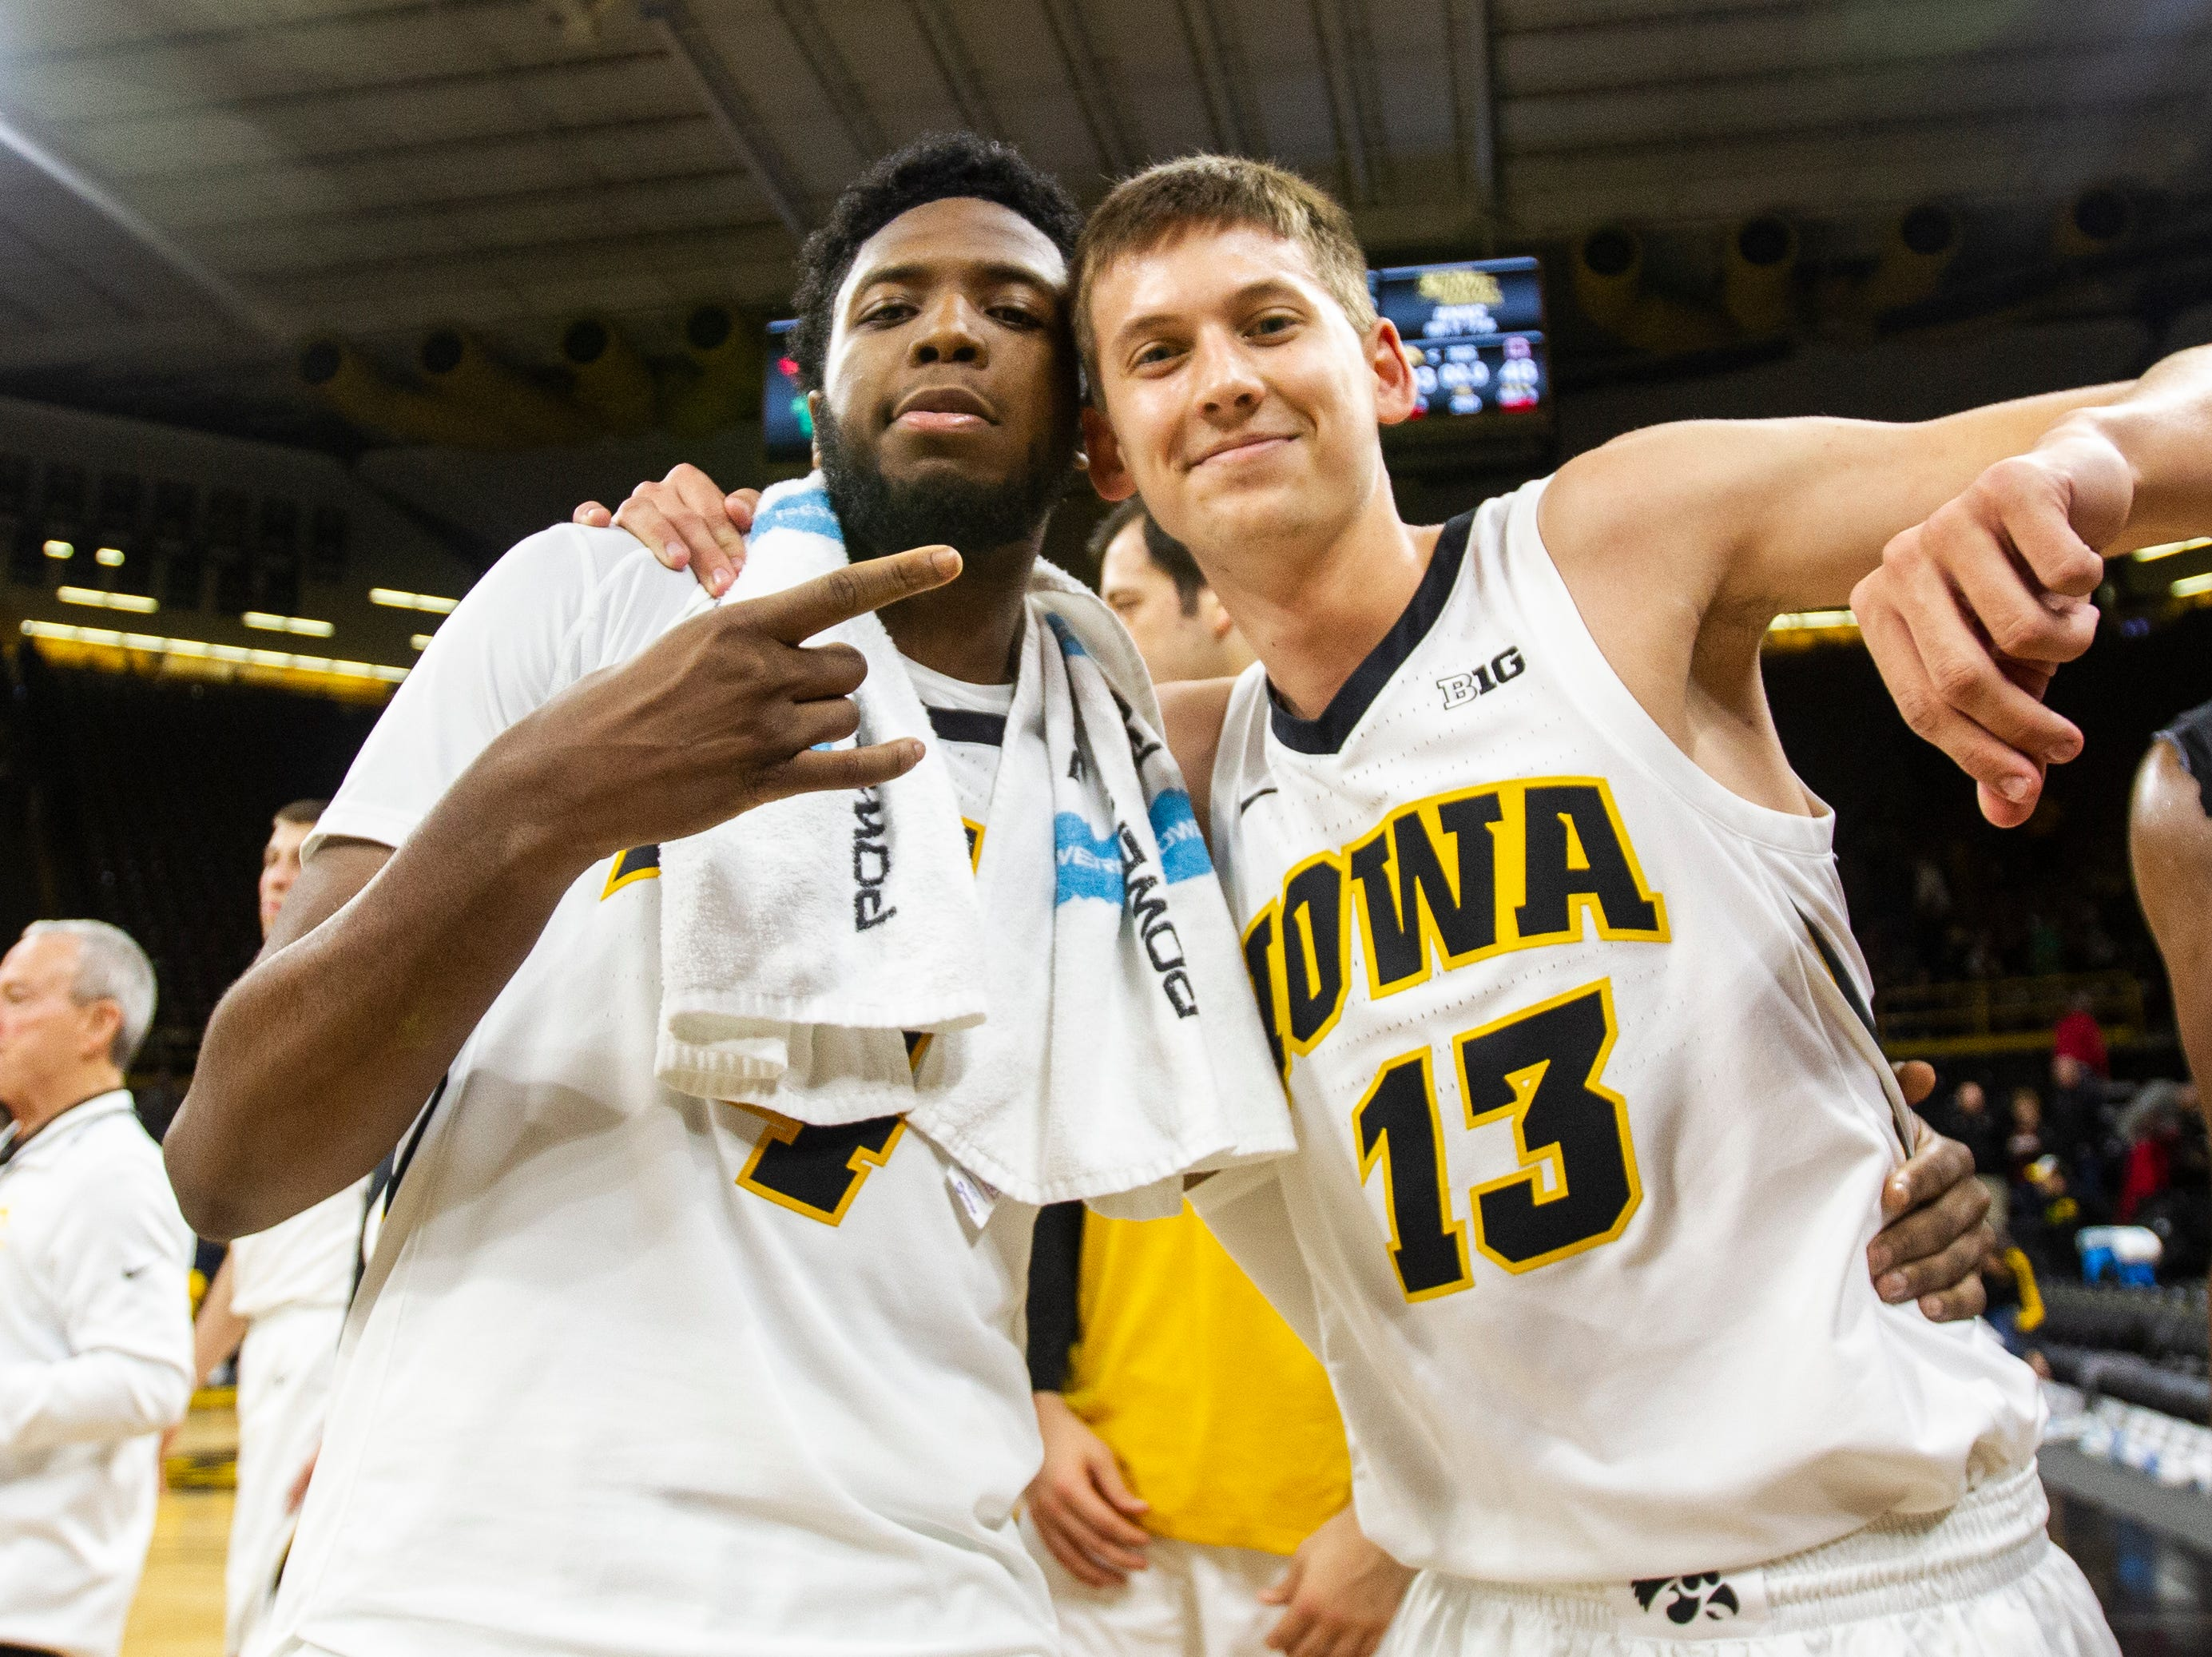 Iowa guard Isaiah Moss (4) and Iowa guard Austin Ash (13) pose for a photo after a men's basketball exhibition game on Sunday, Nov. 4, 2018, at Carver-Hawkeye Arena in Iowa City. The Hawkeyes defeated the Quakers, 103-46.